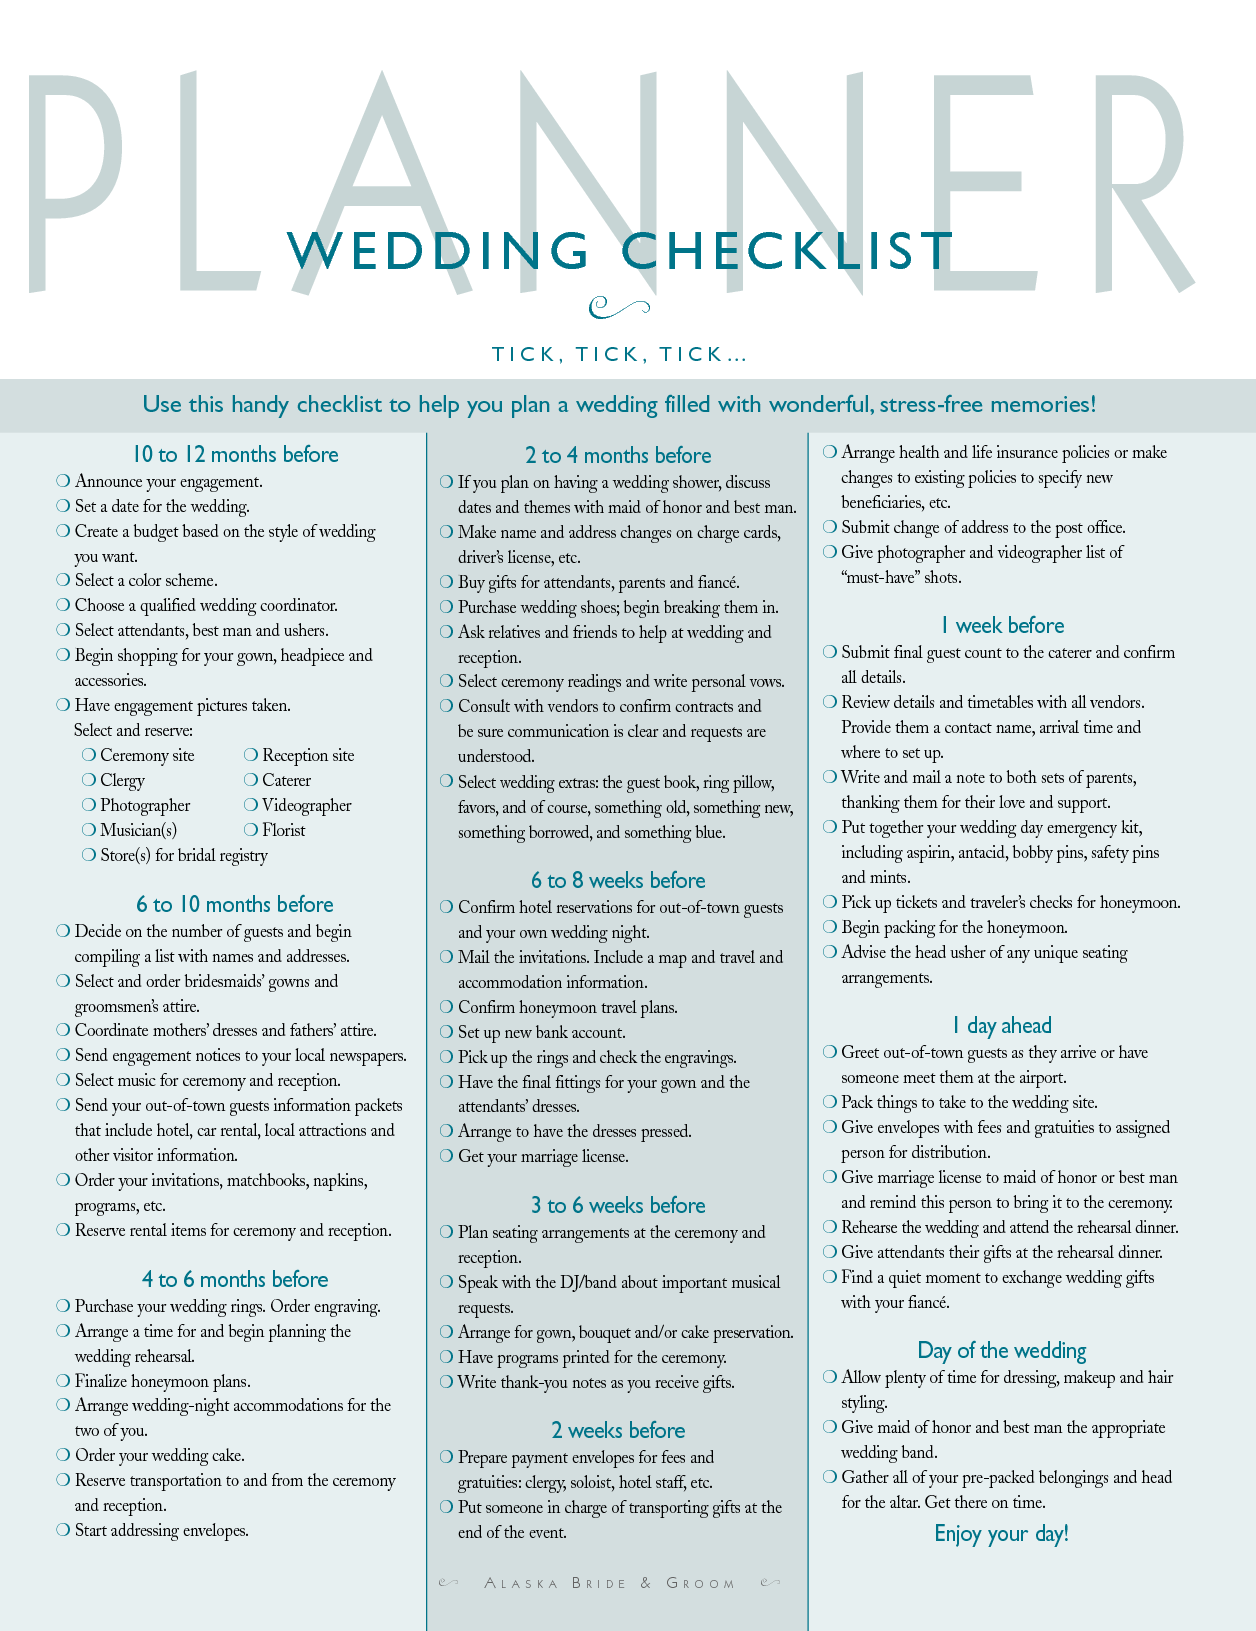 Wedding Organization Planning A Guide For The Unorganized Bride Pinterest Organizations Weddings And